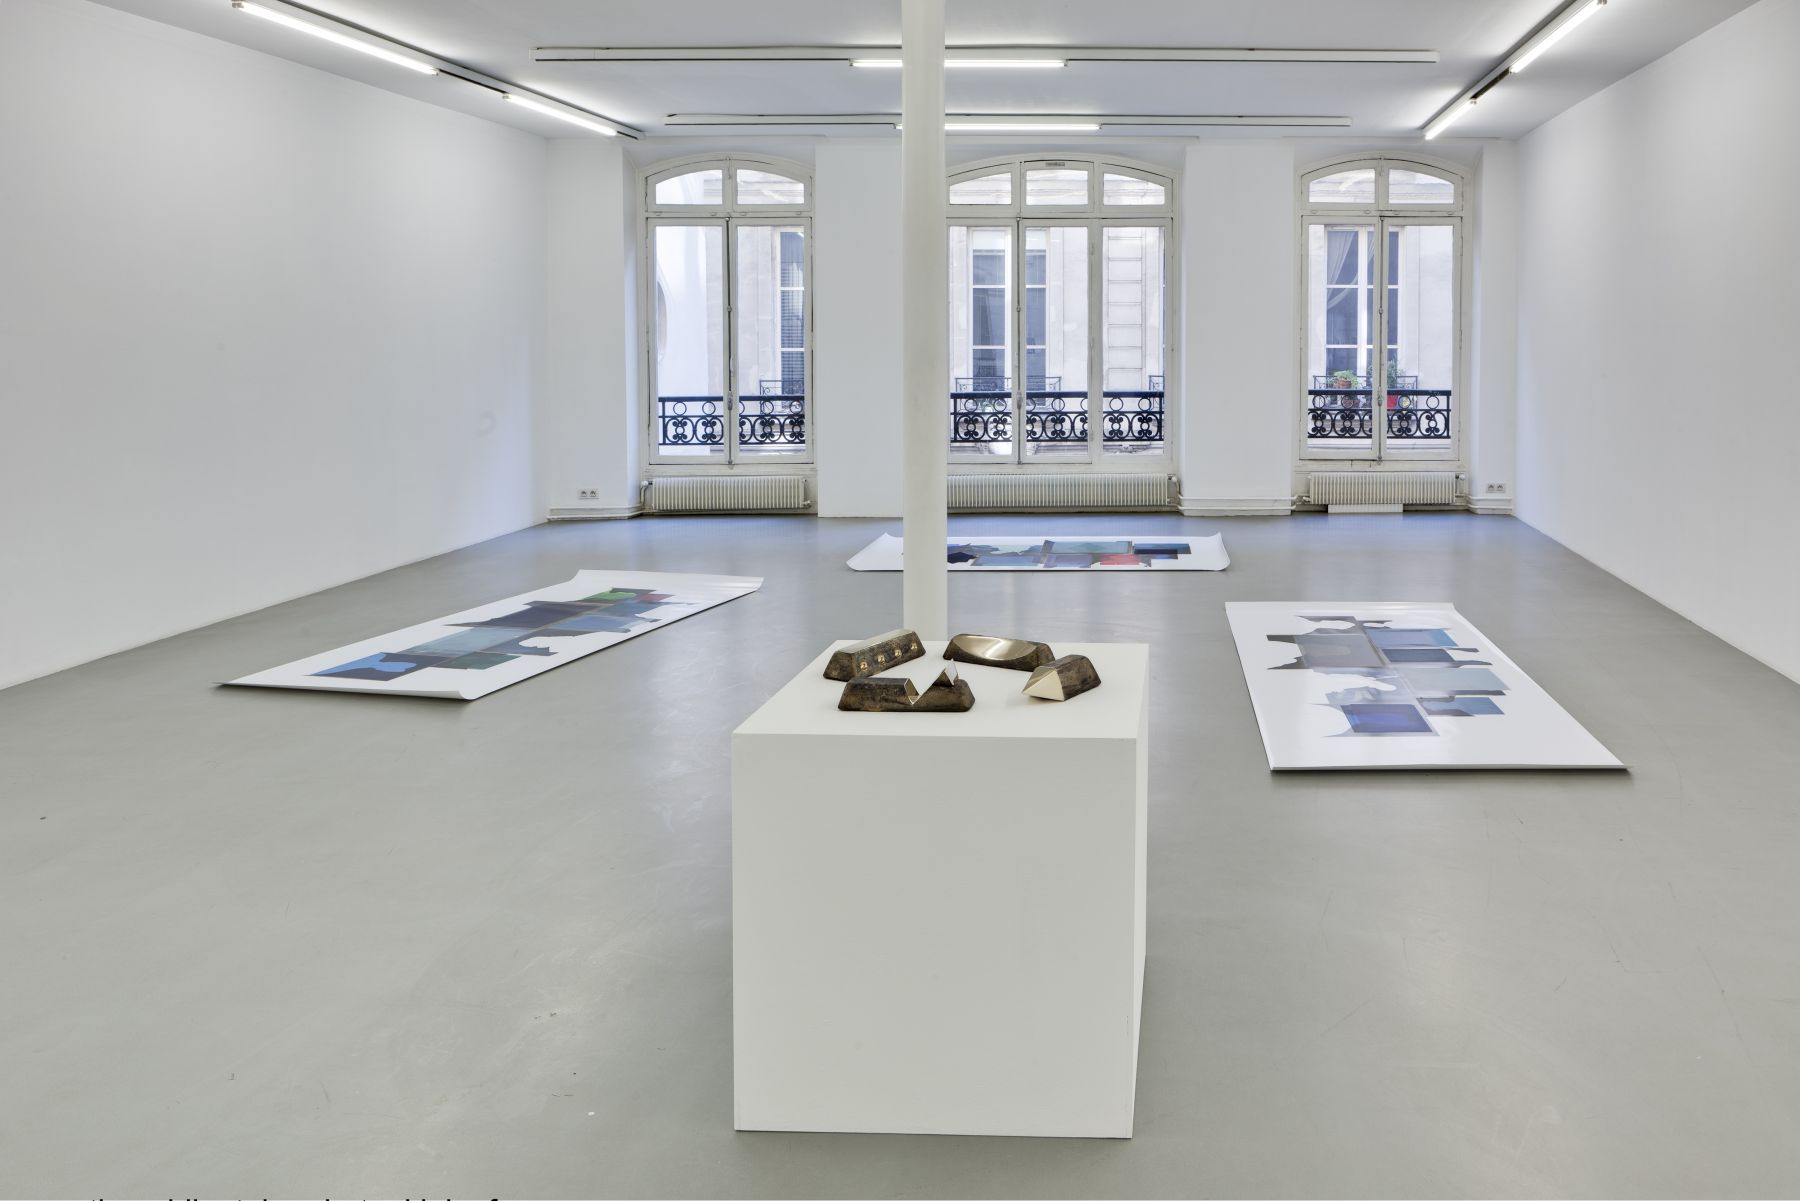 Lucy Skaer: Blanks and Ballast– installation view 8